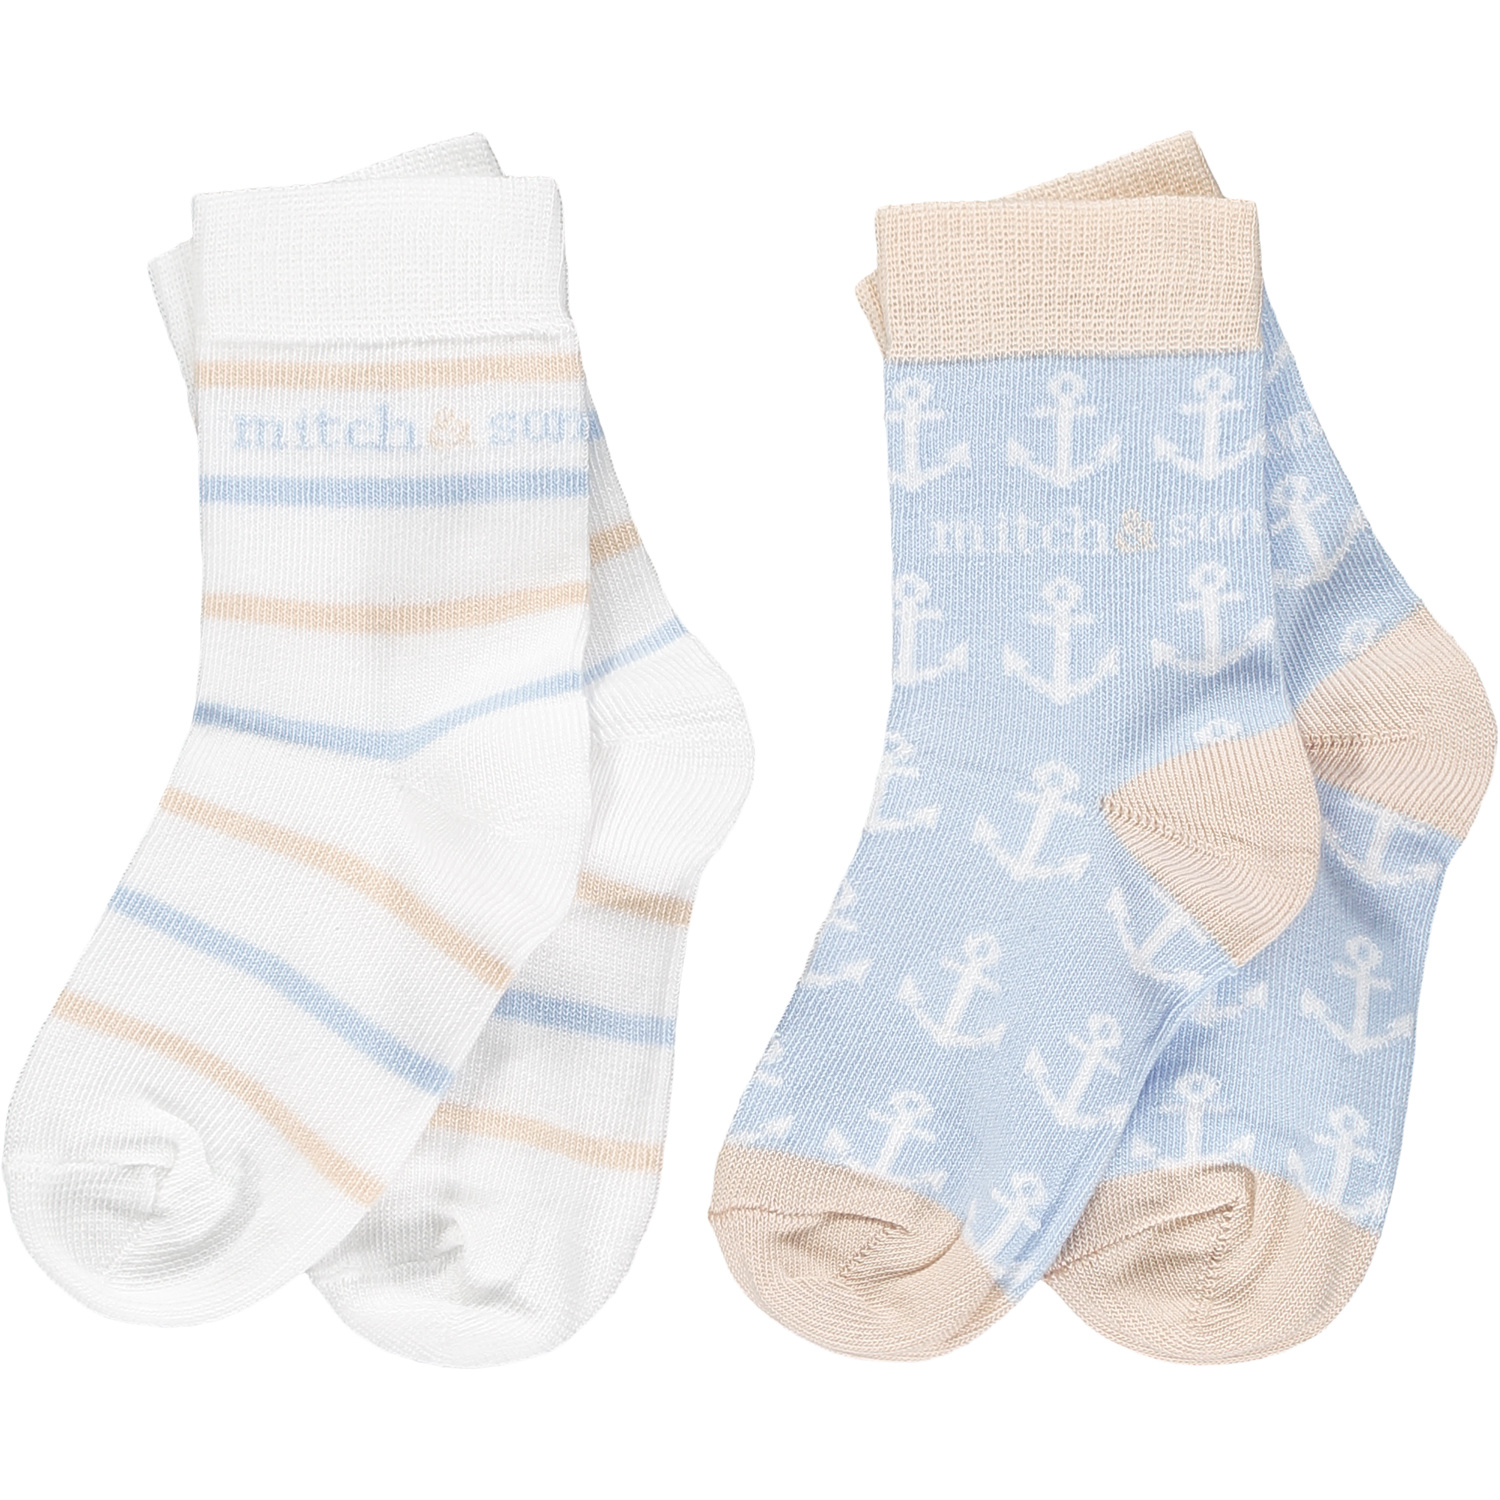 Mitch and Son Mitch & Son Bank Socks